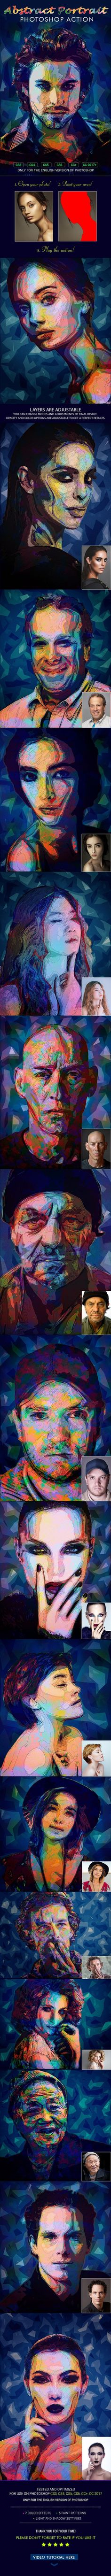 Abstract Portrait Photoshop Action - #Actions #Photoshop Download here: https://graphicriver.net/item/abstract-portrait-photoshop-action/20362867?ref=alena994